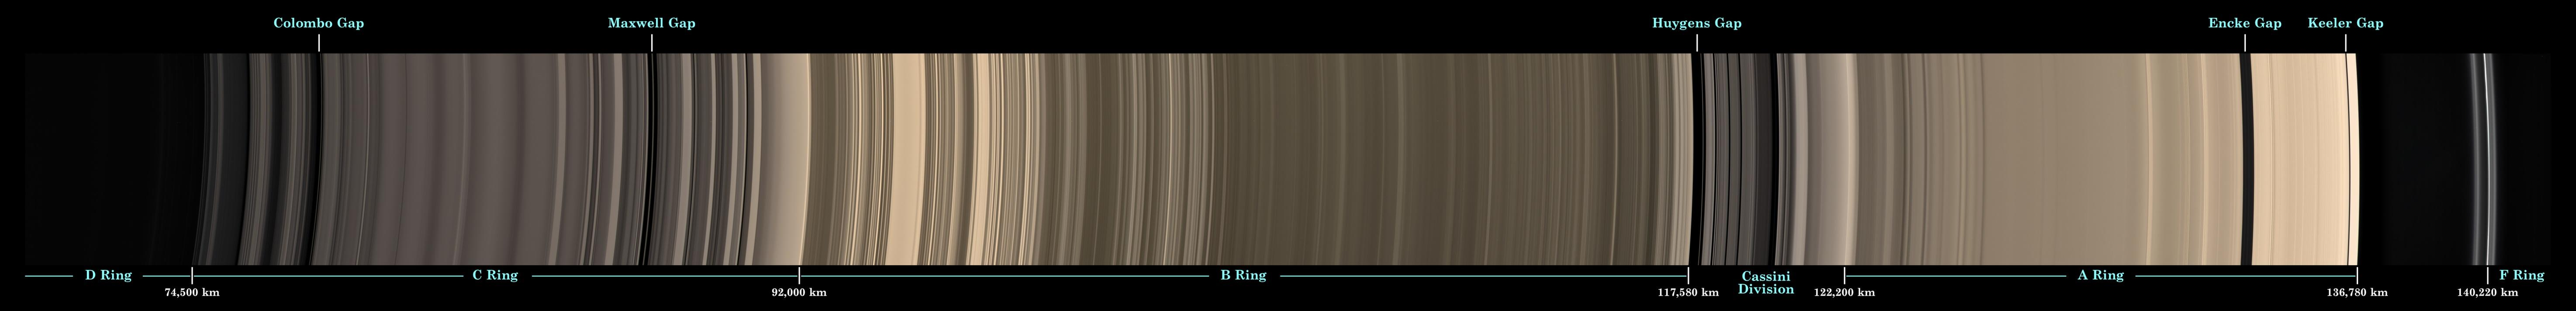 Saturn's rings and gaps